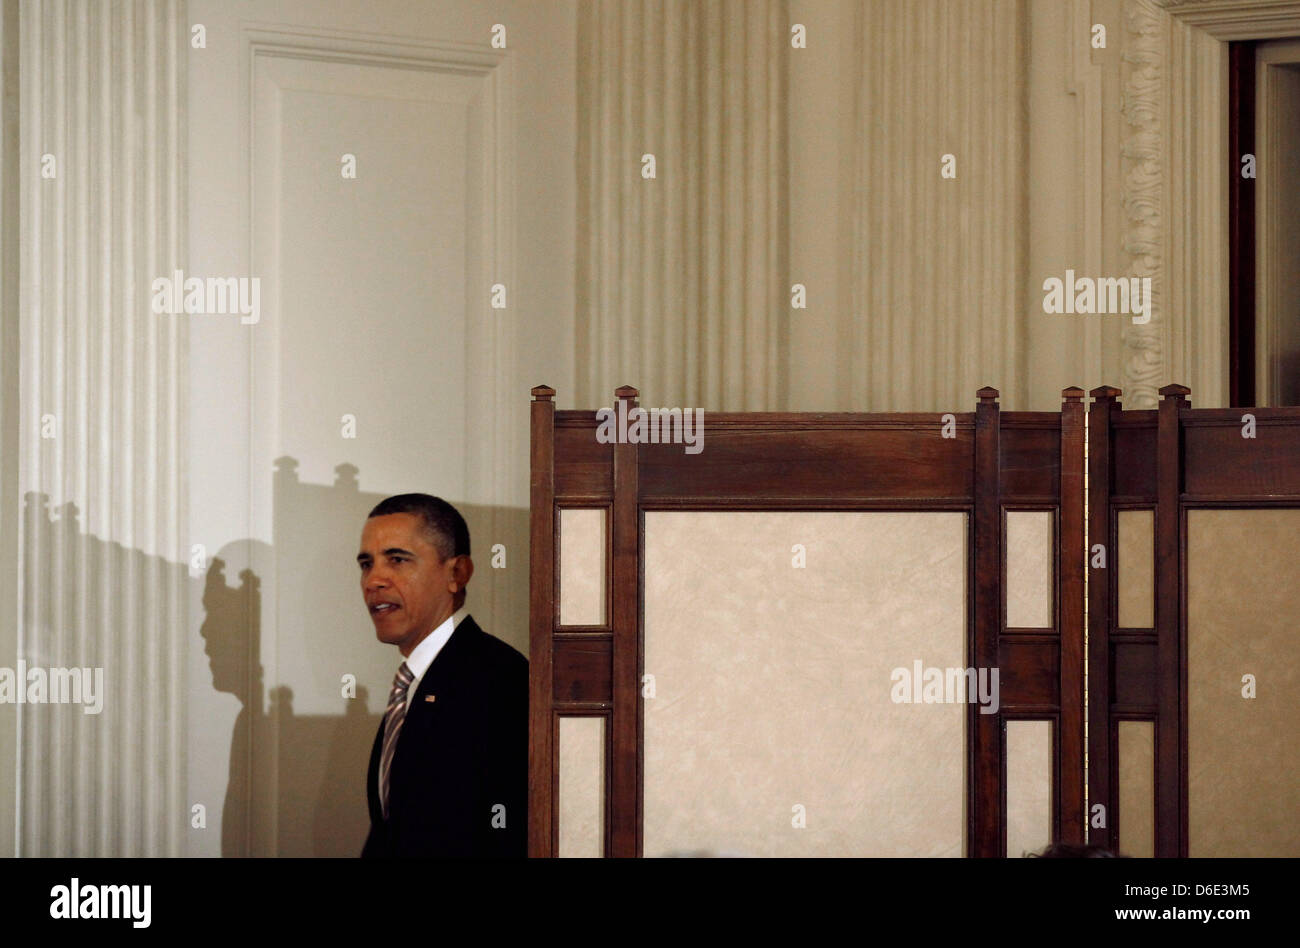 United States President Barack Obama arrives for a meeting with his Council on Jobs and Competitiveness, a group - Stock Image